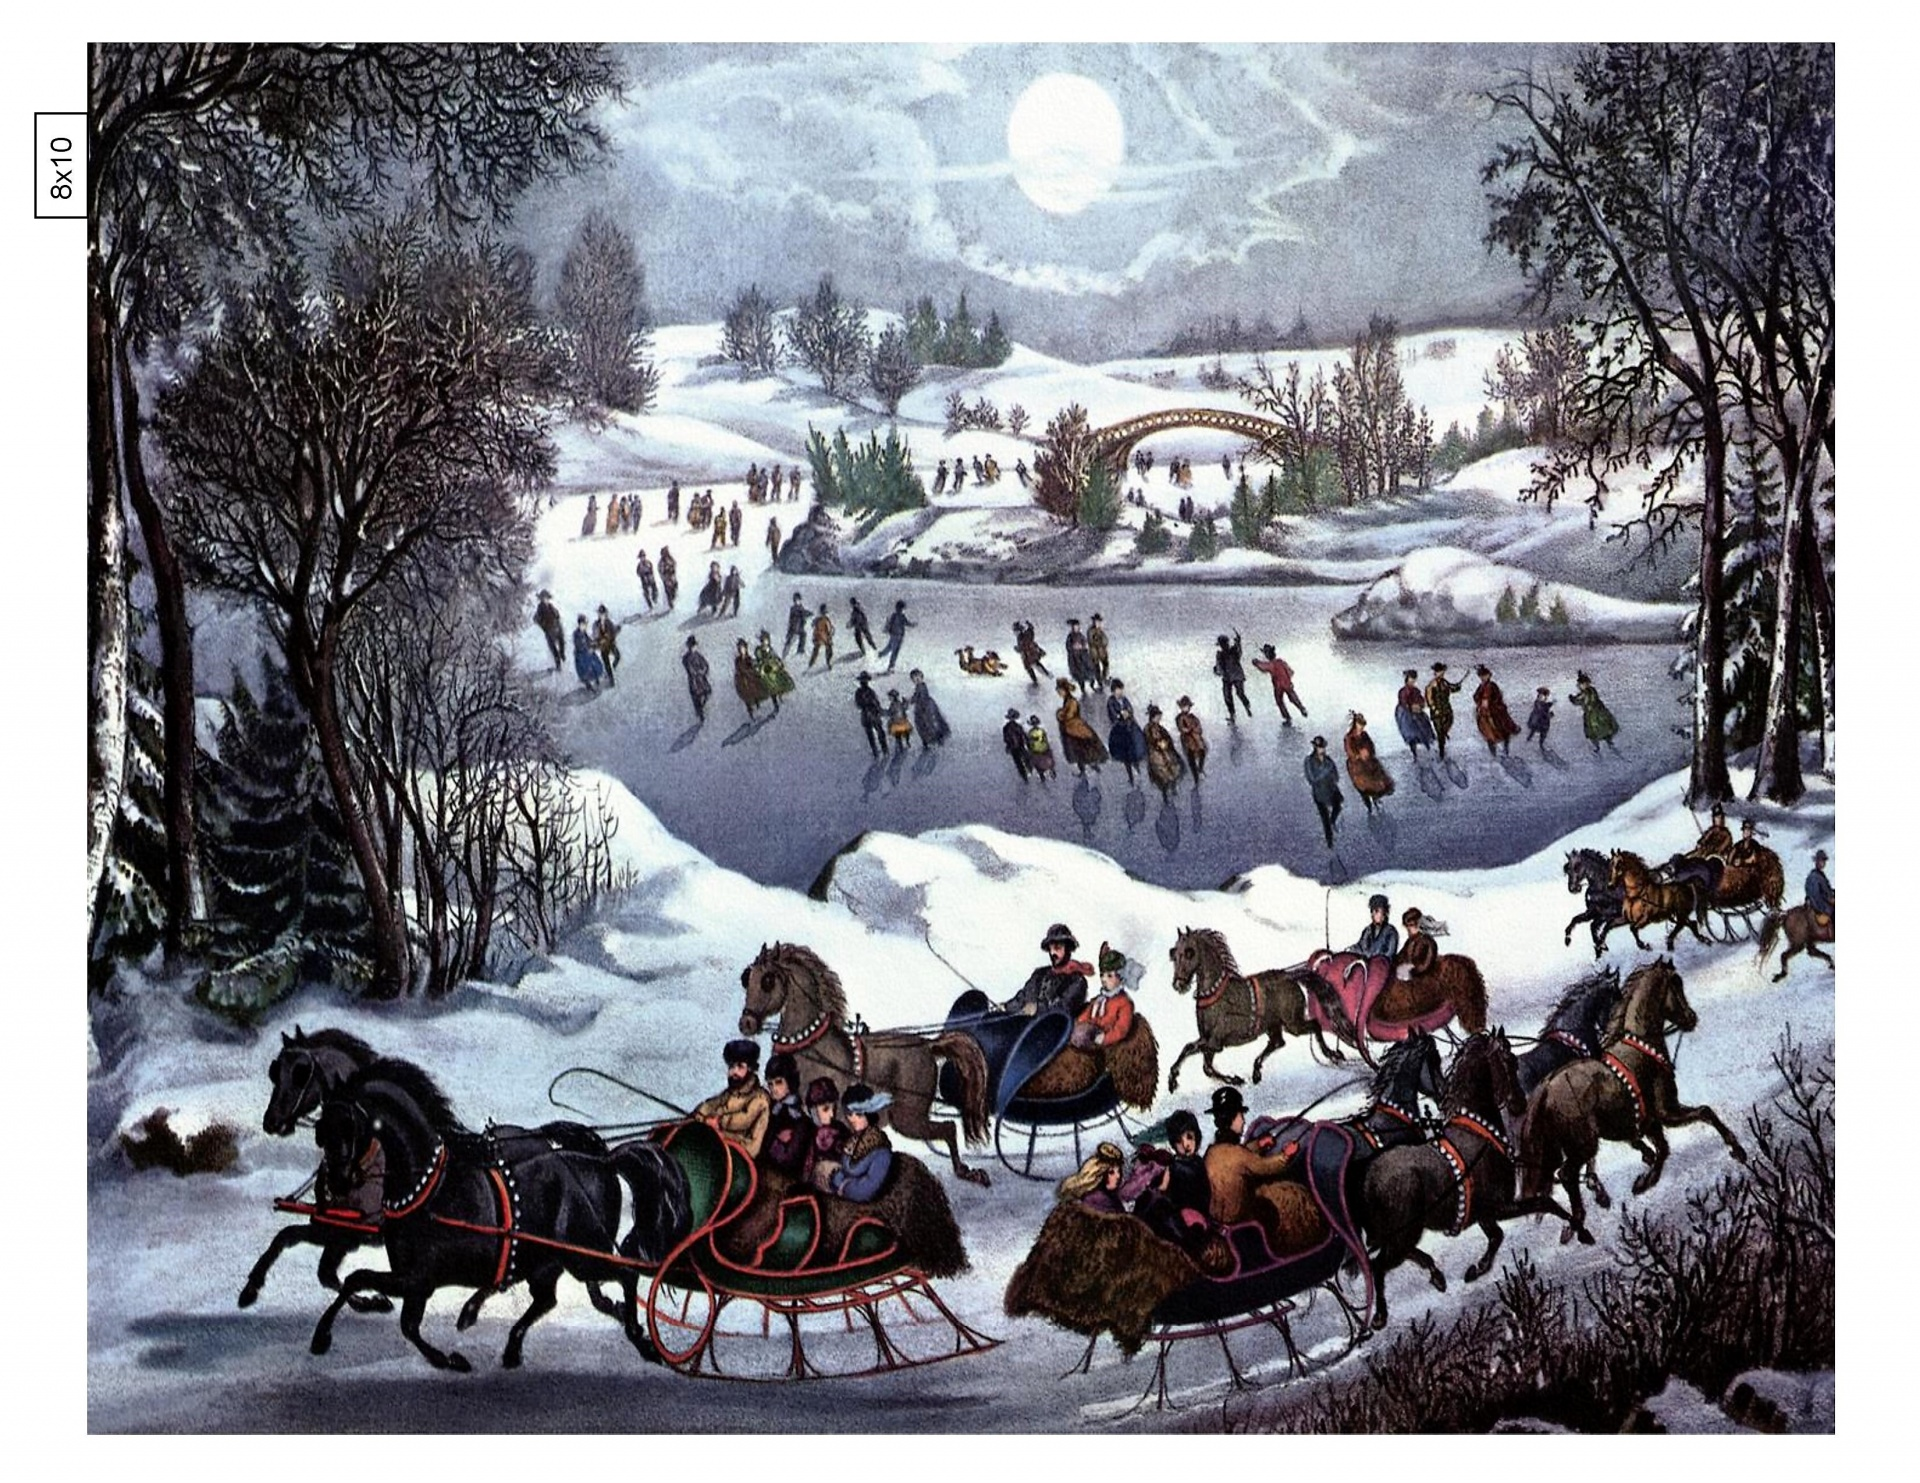 Download Free Photo Of Skating Ice Horse Sleigh Winter From Needpix Com